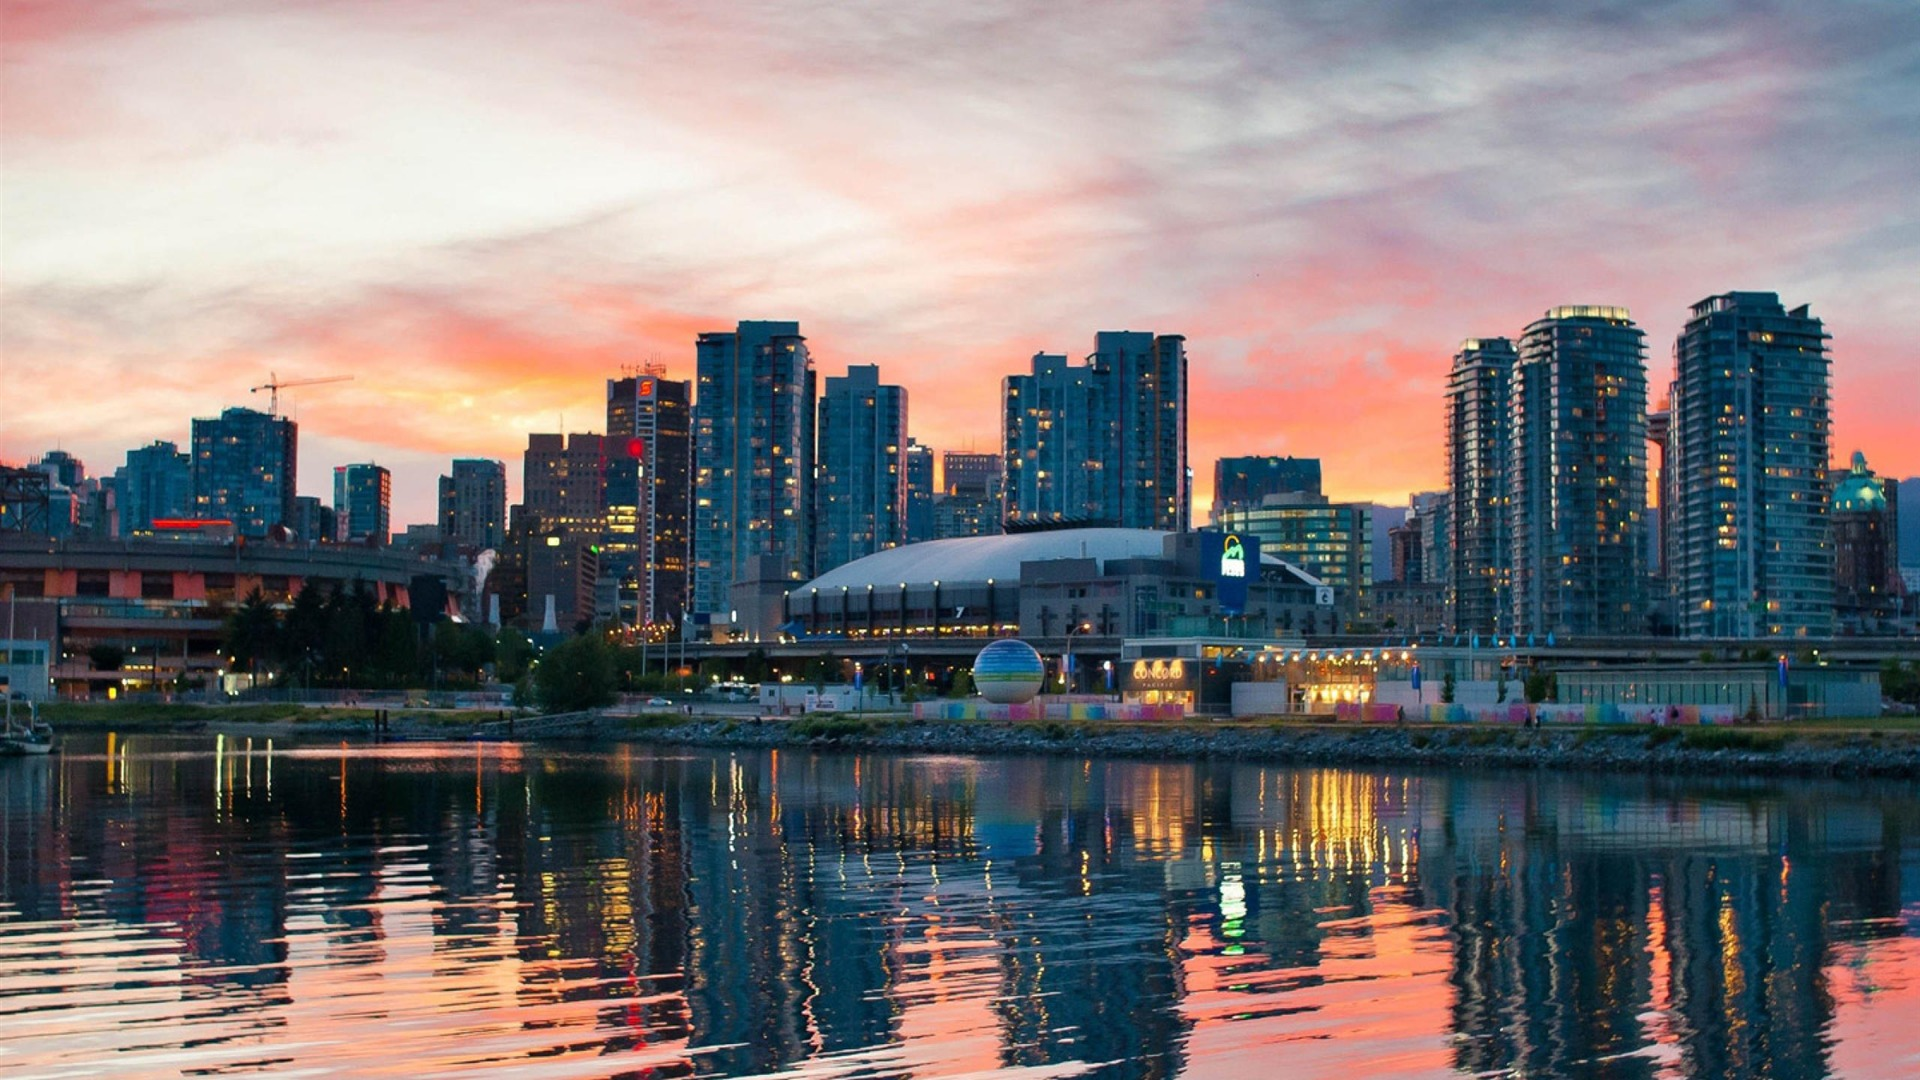 Vancouver Canada City photography wallpaper HD 1080p Wallpaper 1920x1080